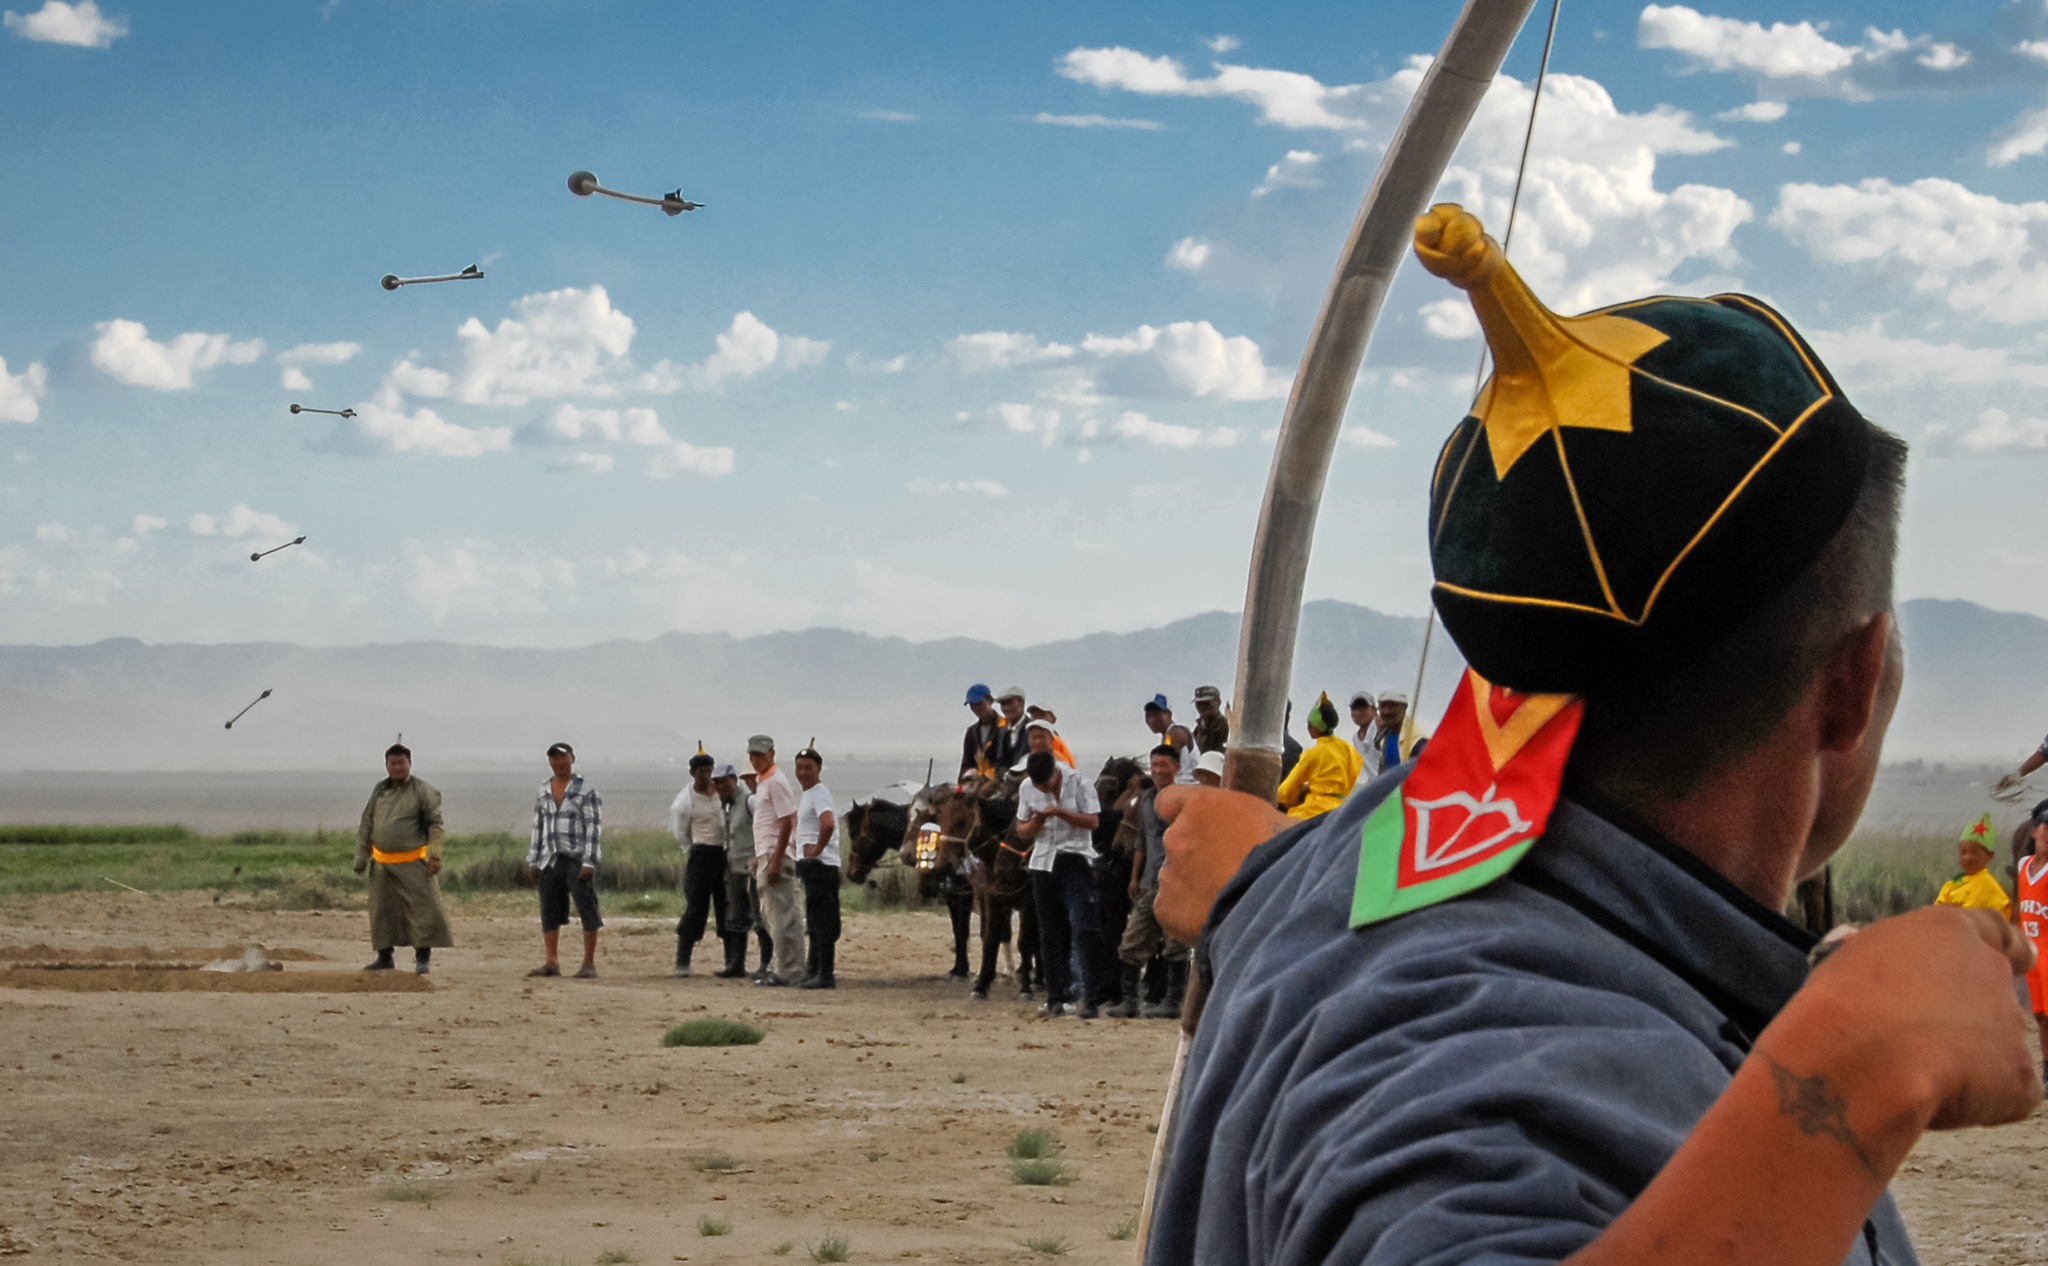 Mongolians use a very effective recurved composite bow. For this competition, the arrows have a big heavy arrowhead designed to hit a target on the ground. Flickr - Bernd Thaller